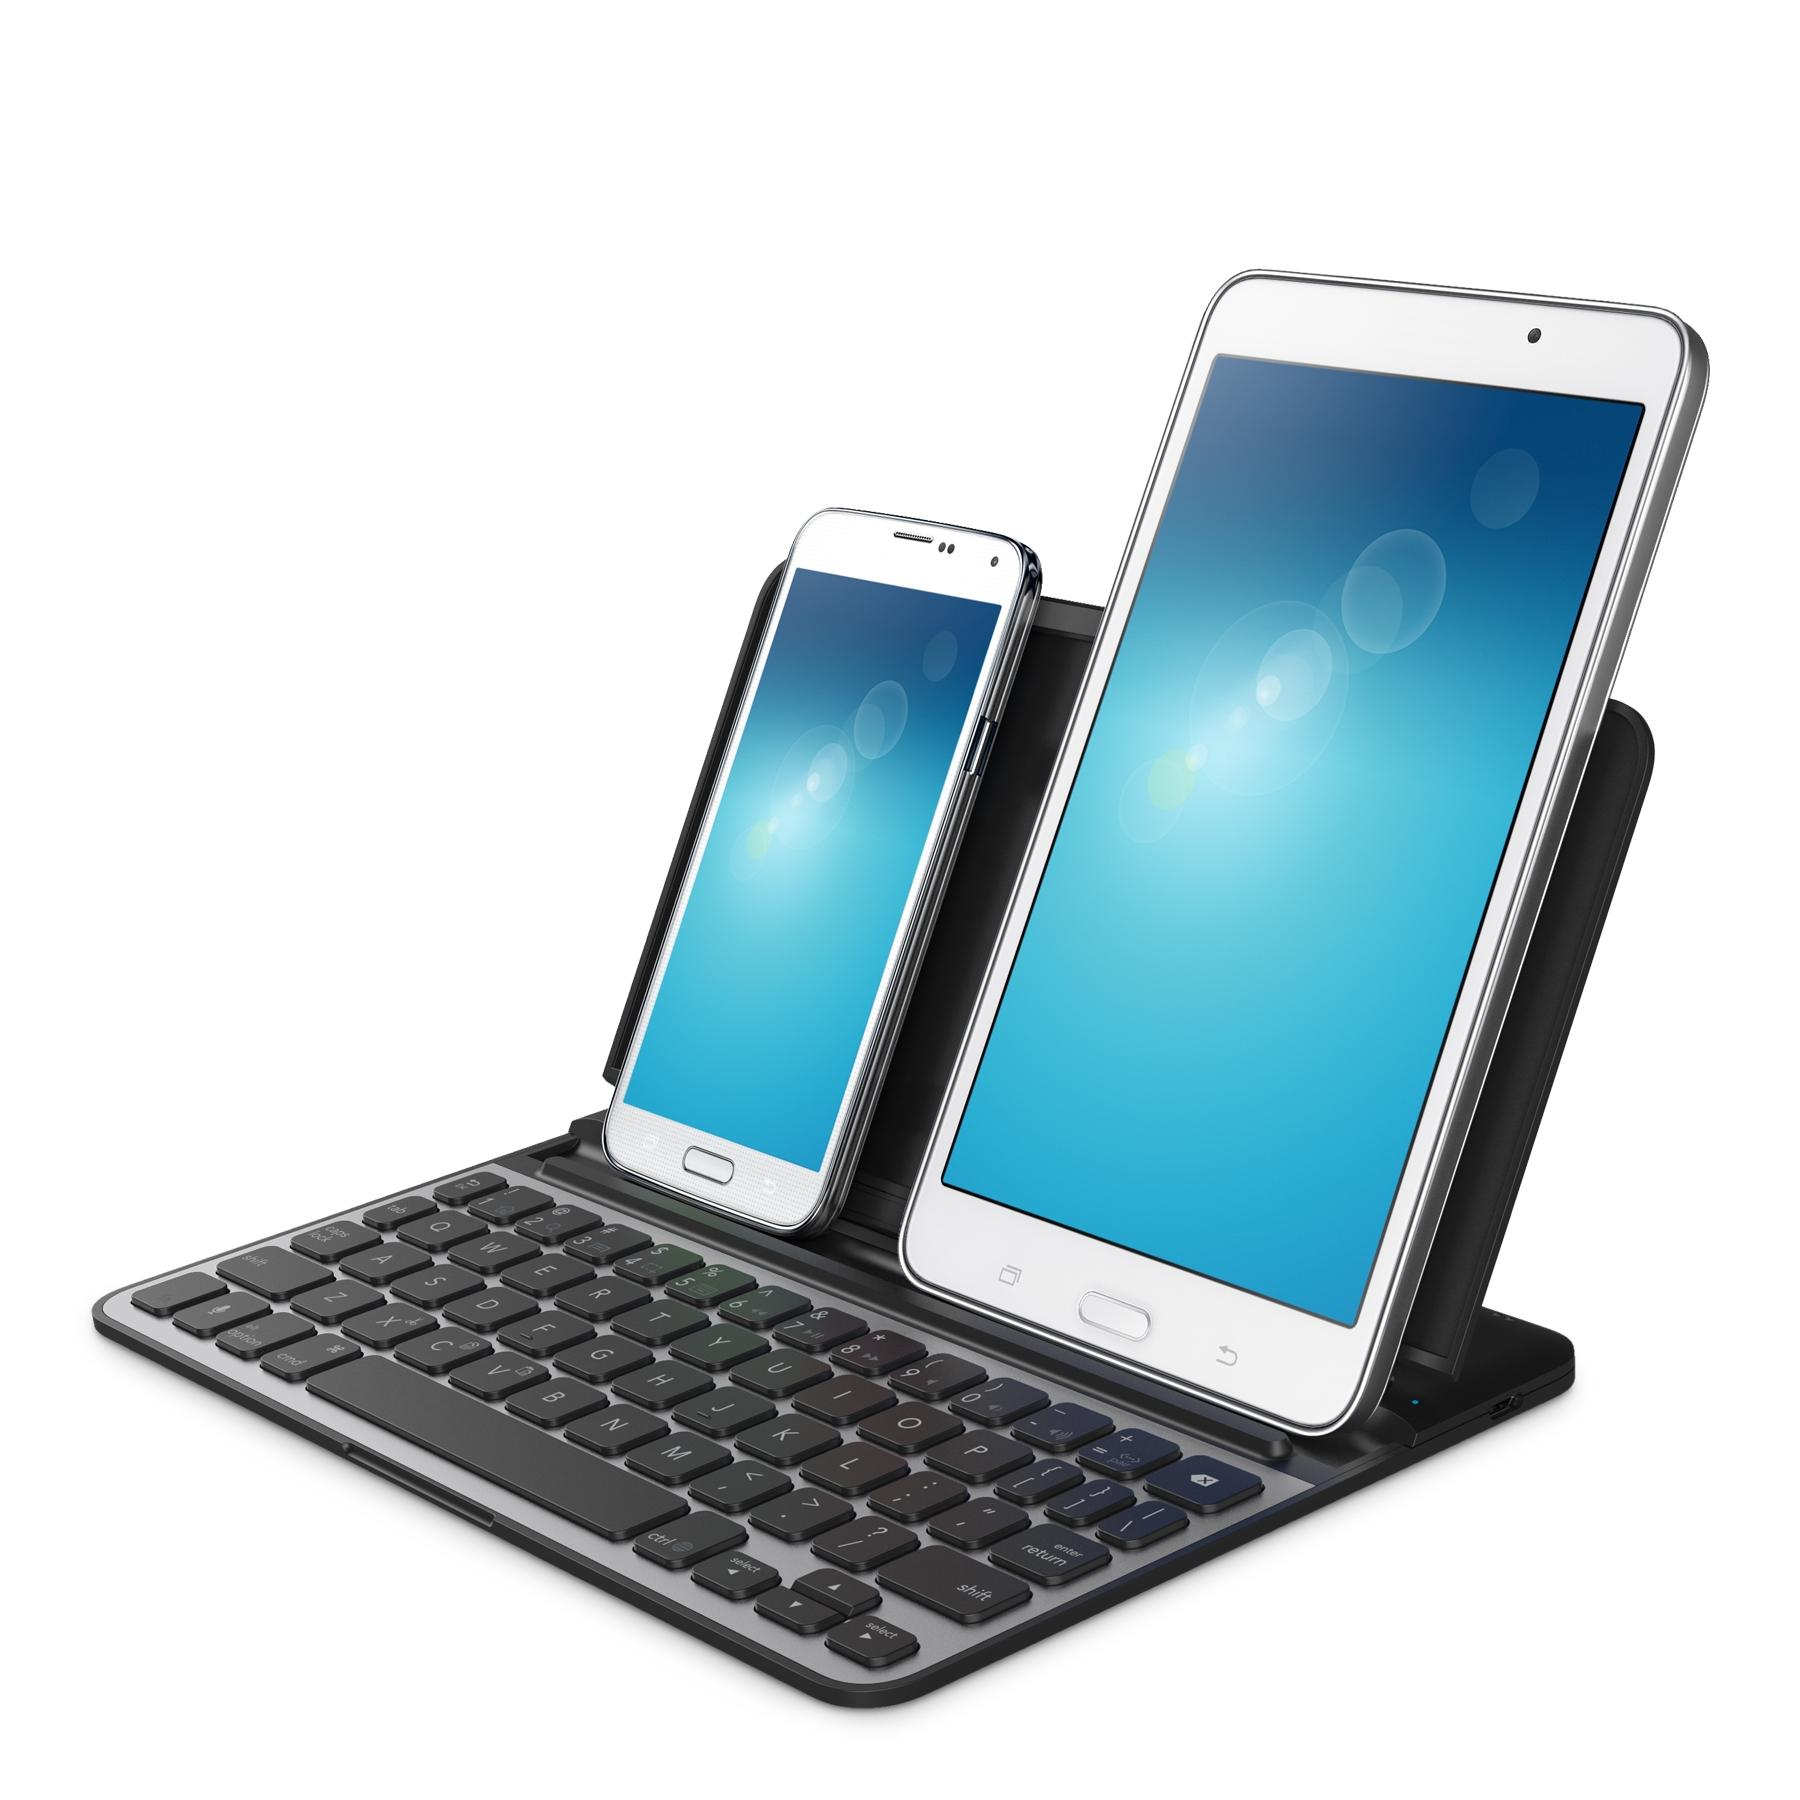 Belkin Bluetooth Keyboard Pairing Android: Amazon.com: Belkin Universal Mobile Keyboard Case, Wirelessly Pairs Two Smartphones And/or